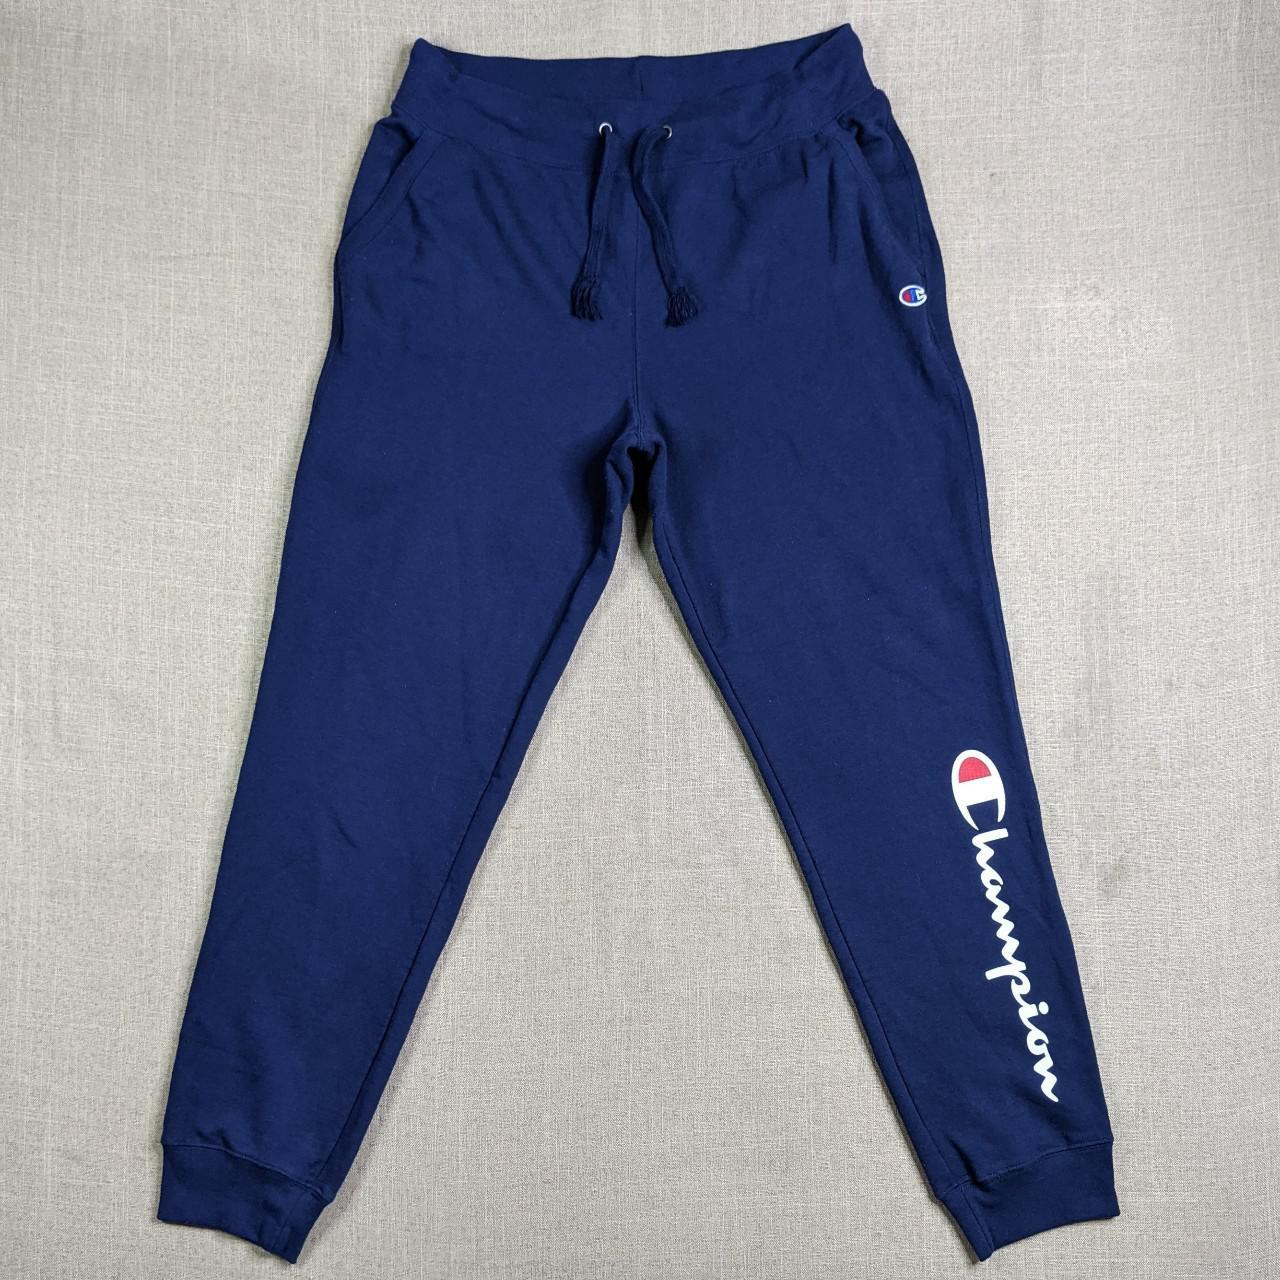 Product Image 1 - Champion sweatpants in navy blue.